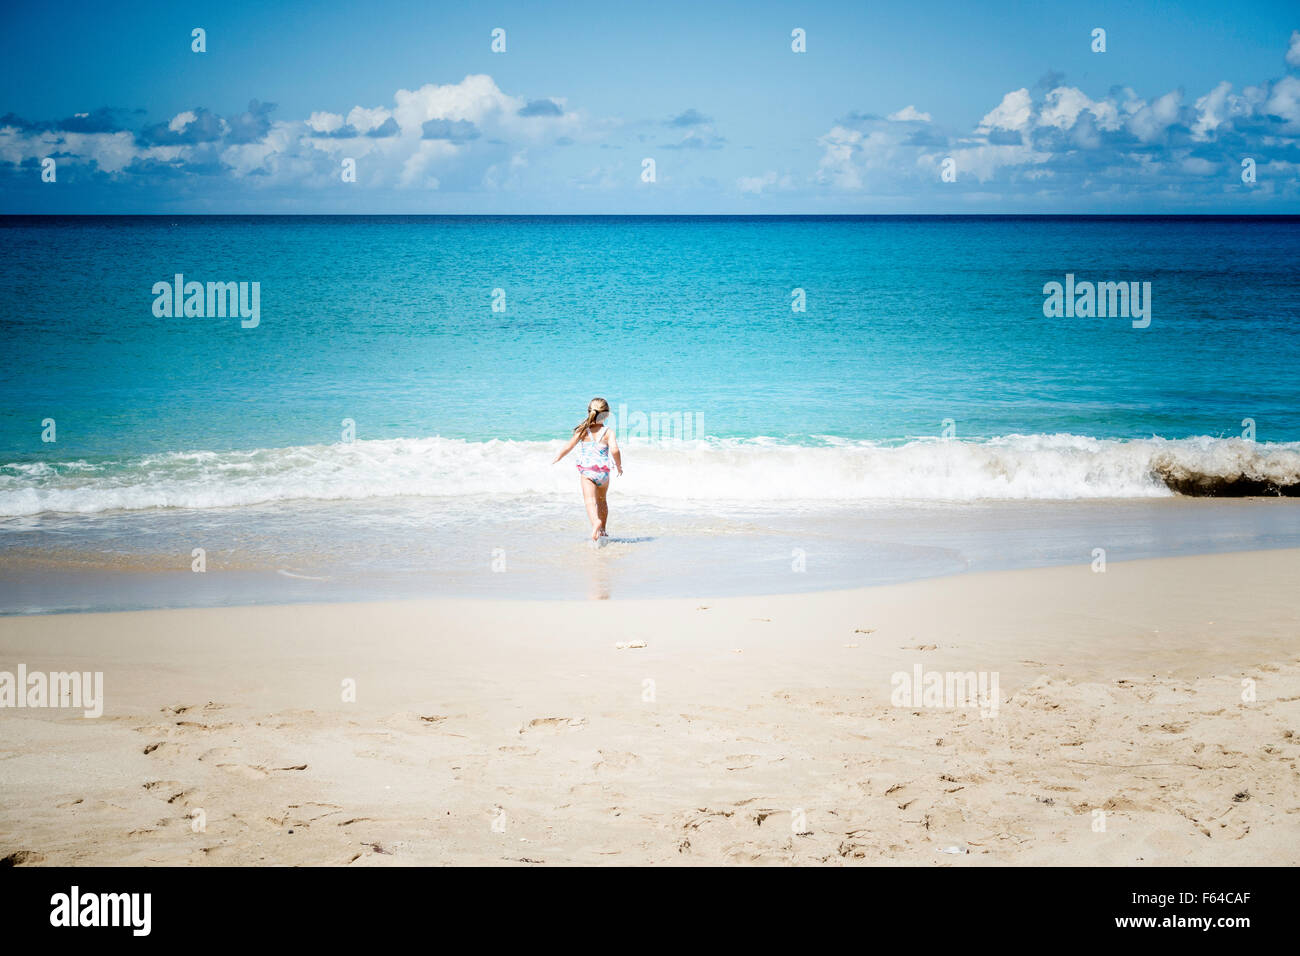 a-four-year-old-caucasian-girl-plays-on-the-beach-at-st-croix-us-virgin-F64CAF.jpg